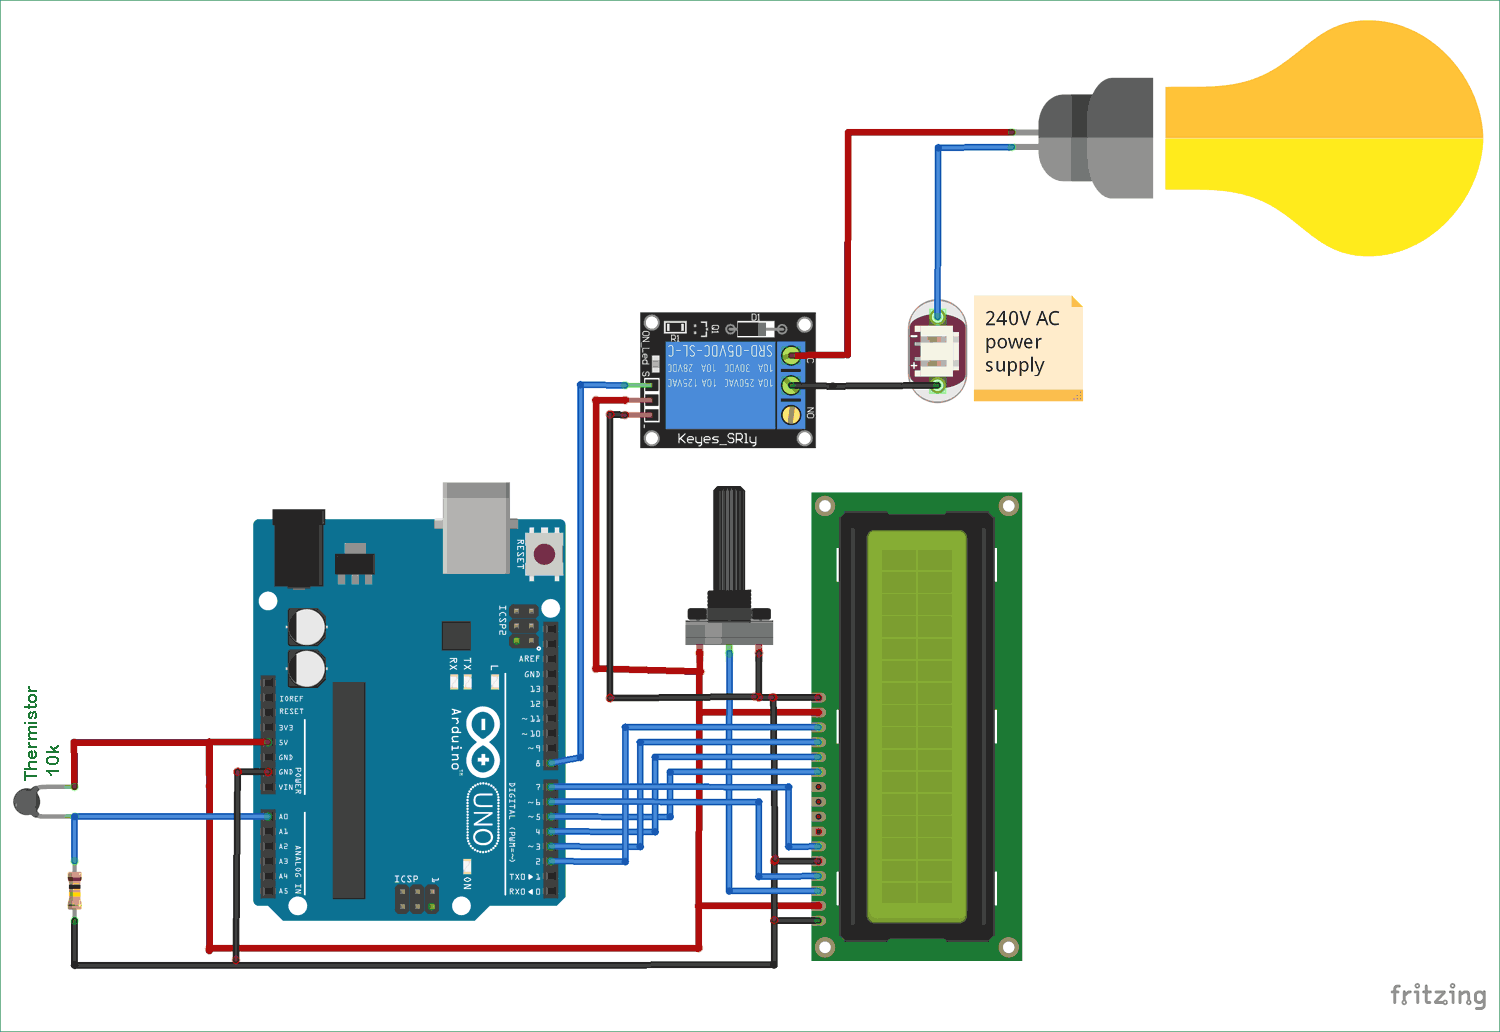 Temperature Controlled Ac Home Appliances Using Arduino And Thermistor Drive Relay By Digital Circuit Control Based On